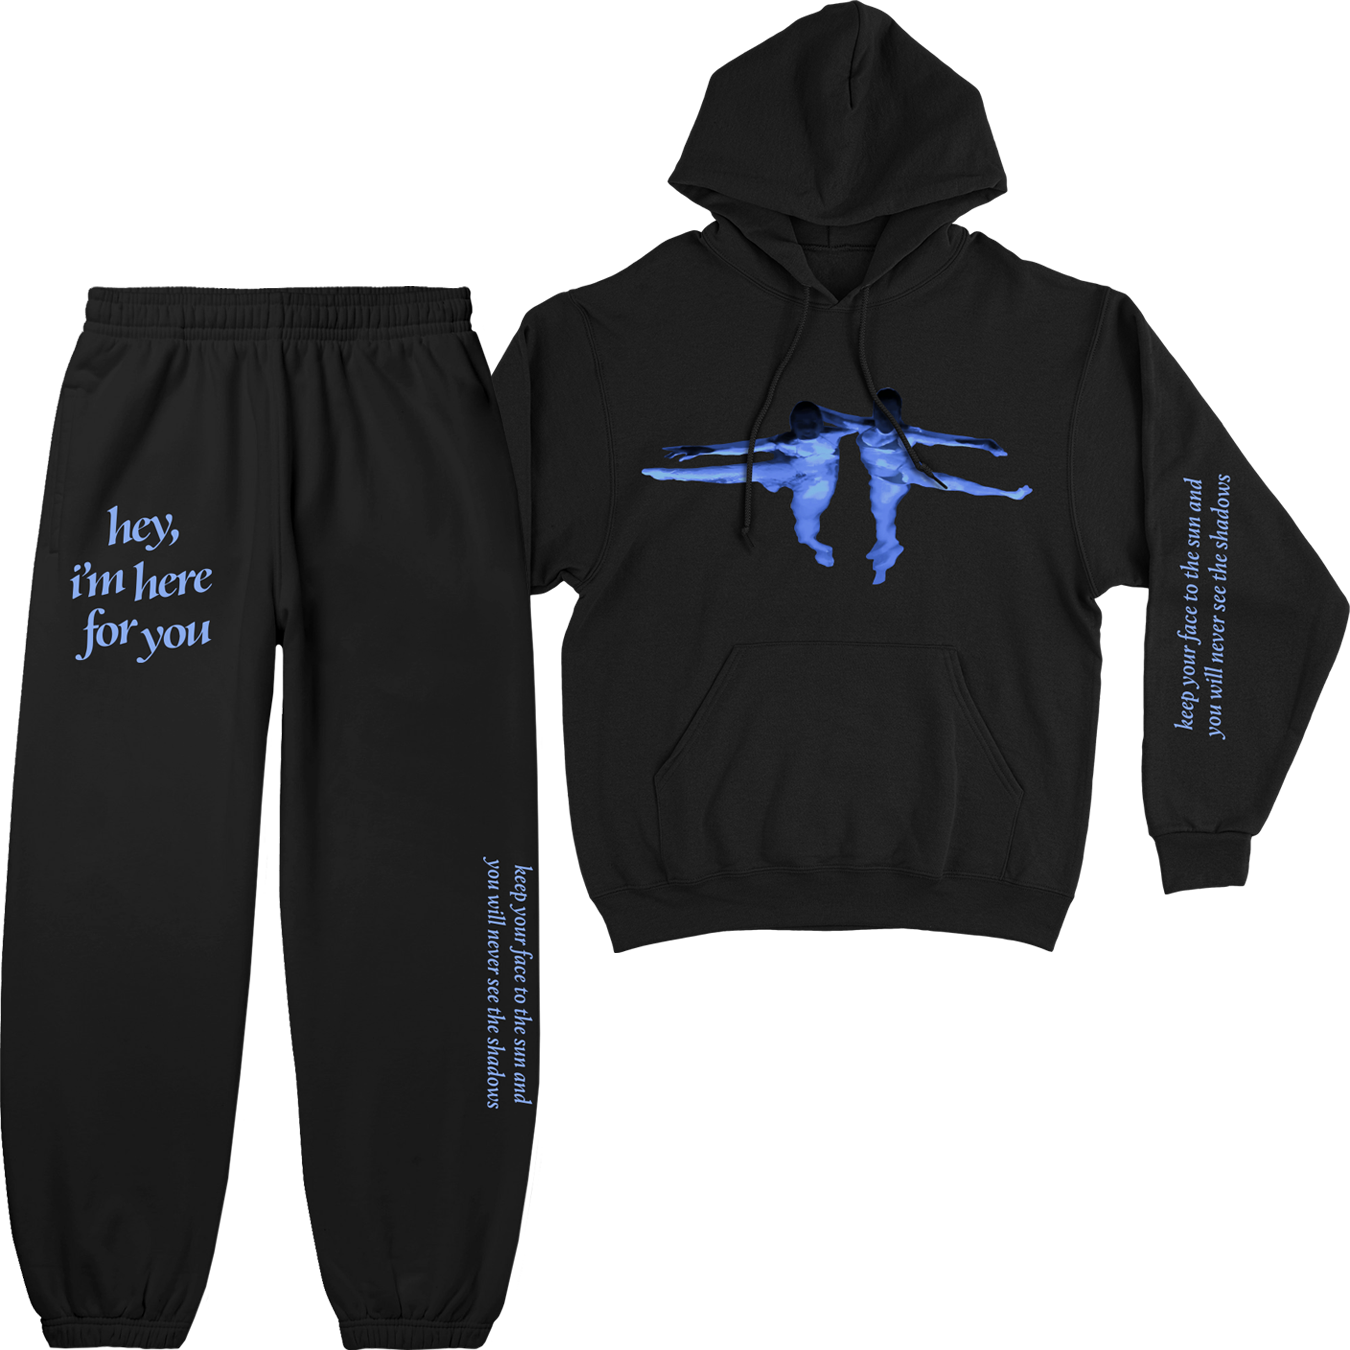 HIHFY BLACK SWEATSUIT + DIGITAL ALBUM